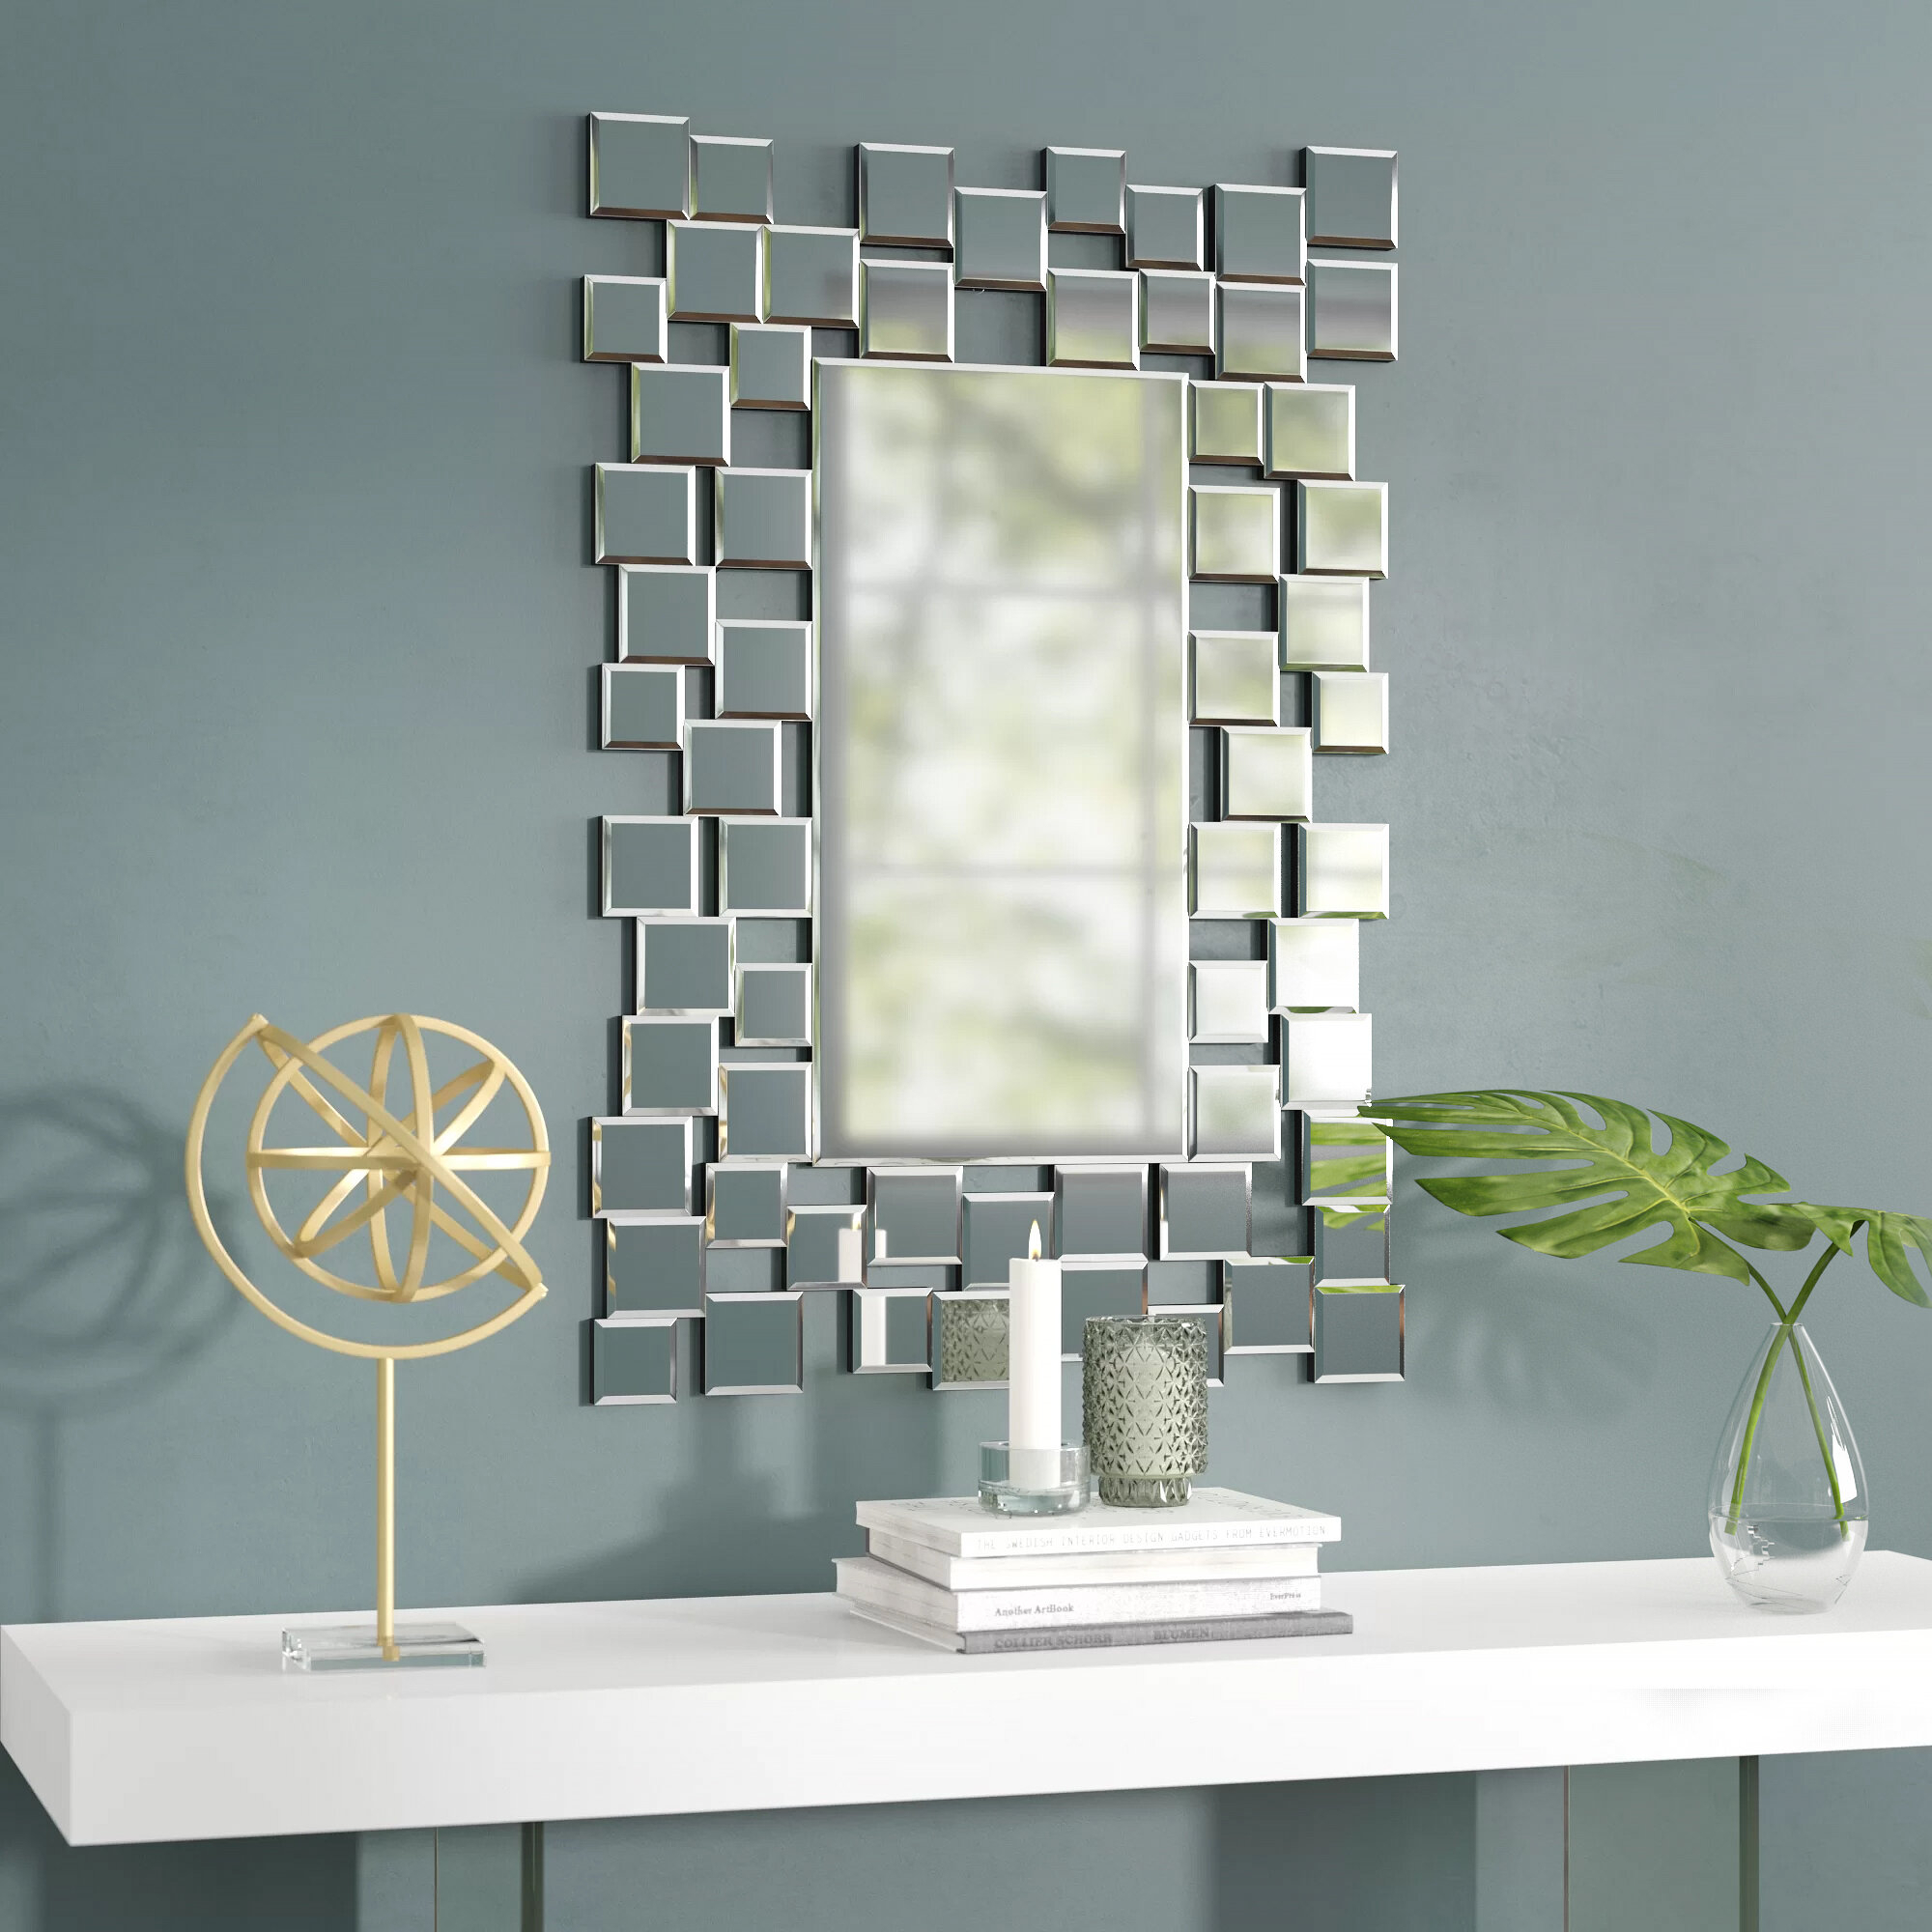 2019 Pennsburg Rectangle Wall Mirror By Wade Logan pertaining to Brayden Studio Modern & Contemporary Accent Wall Mirror